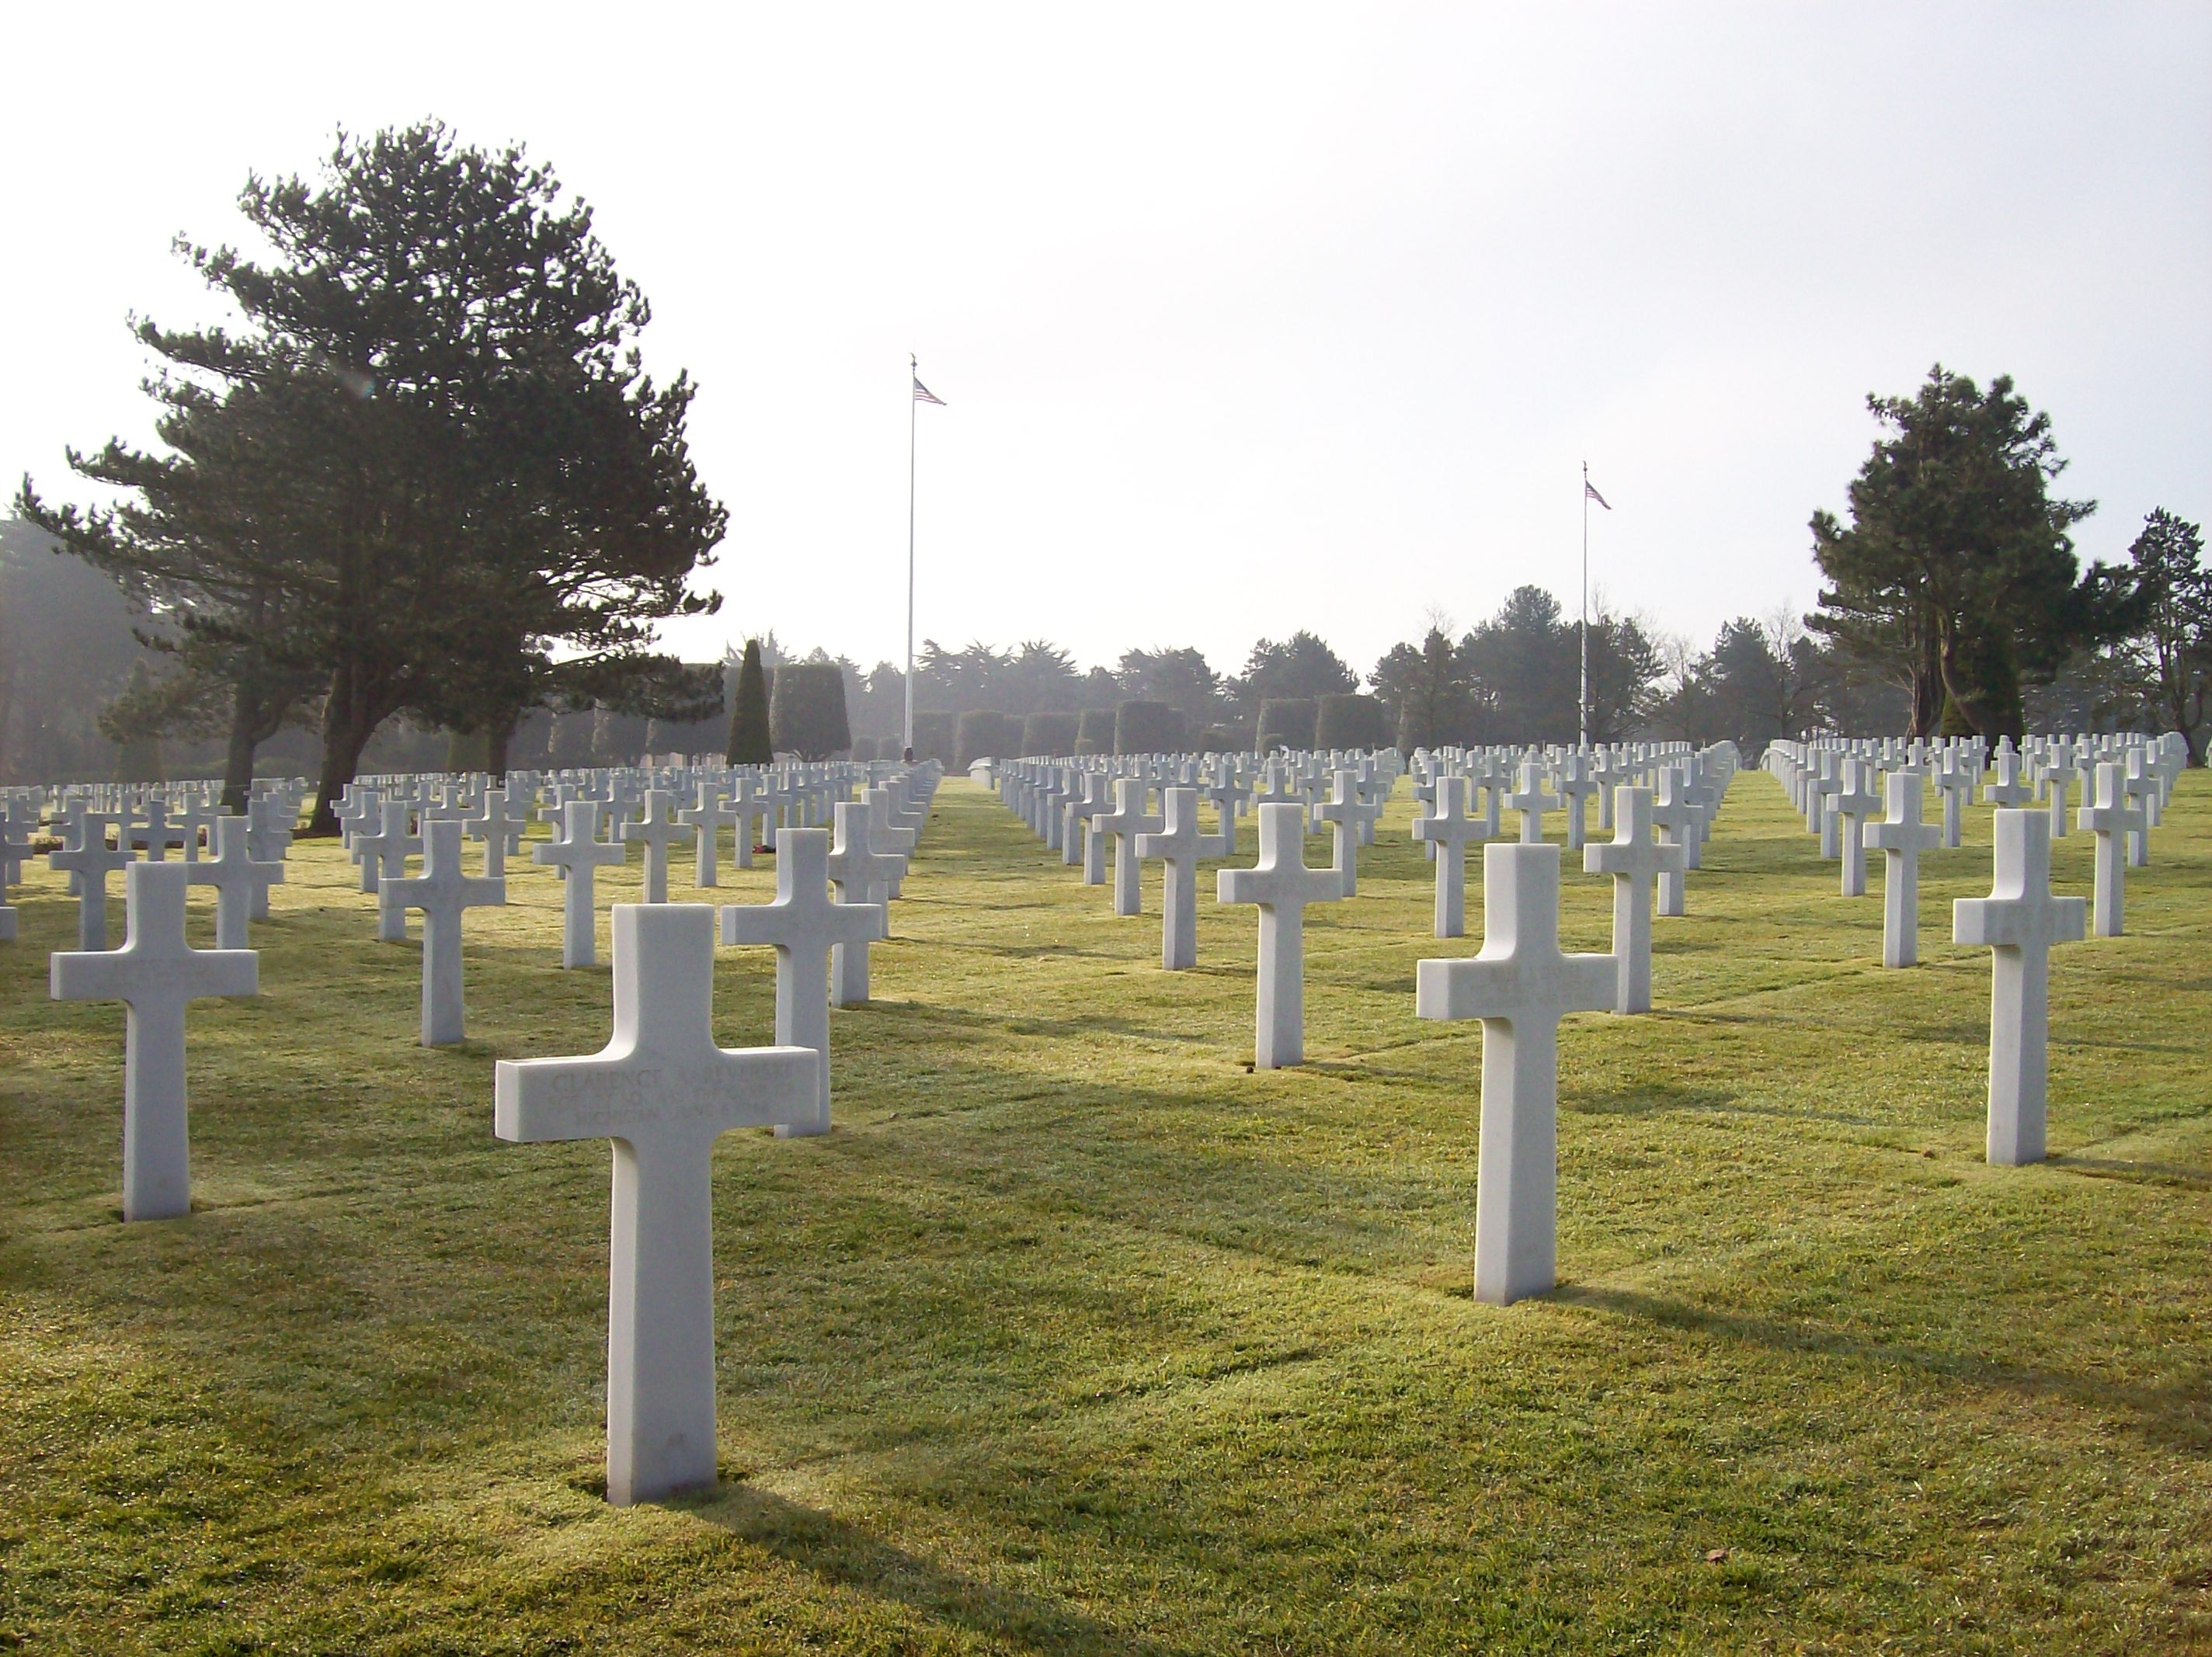 D-day Cemetery, Cemetery, Landscape, Tombstones, Sunlight, HQ Photo